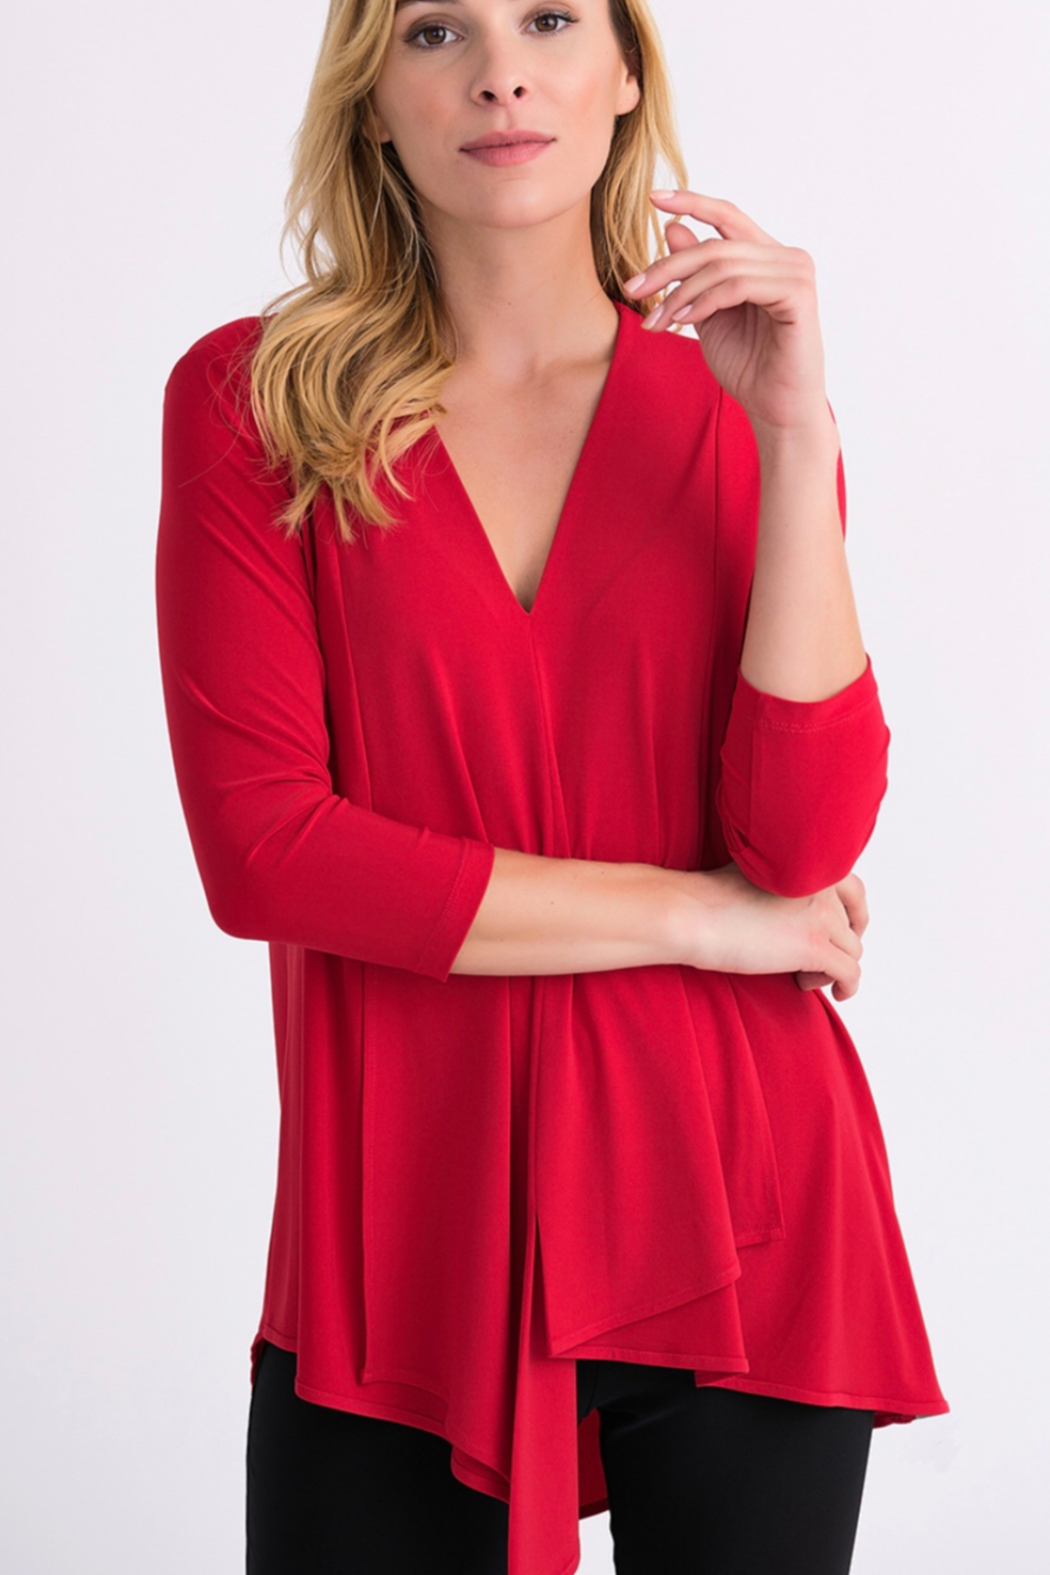 161066T Red, flowy asymmetrical tunic top, 3/4 length sleeve, 4-neck - Main Image